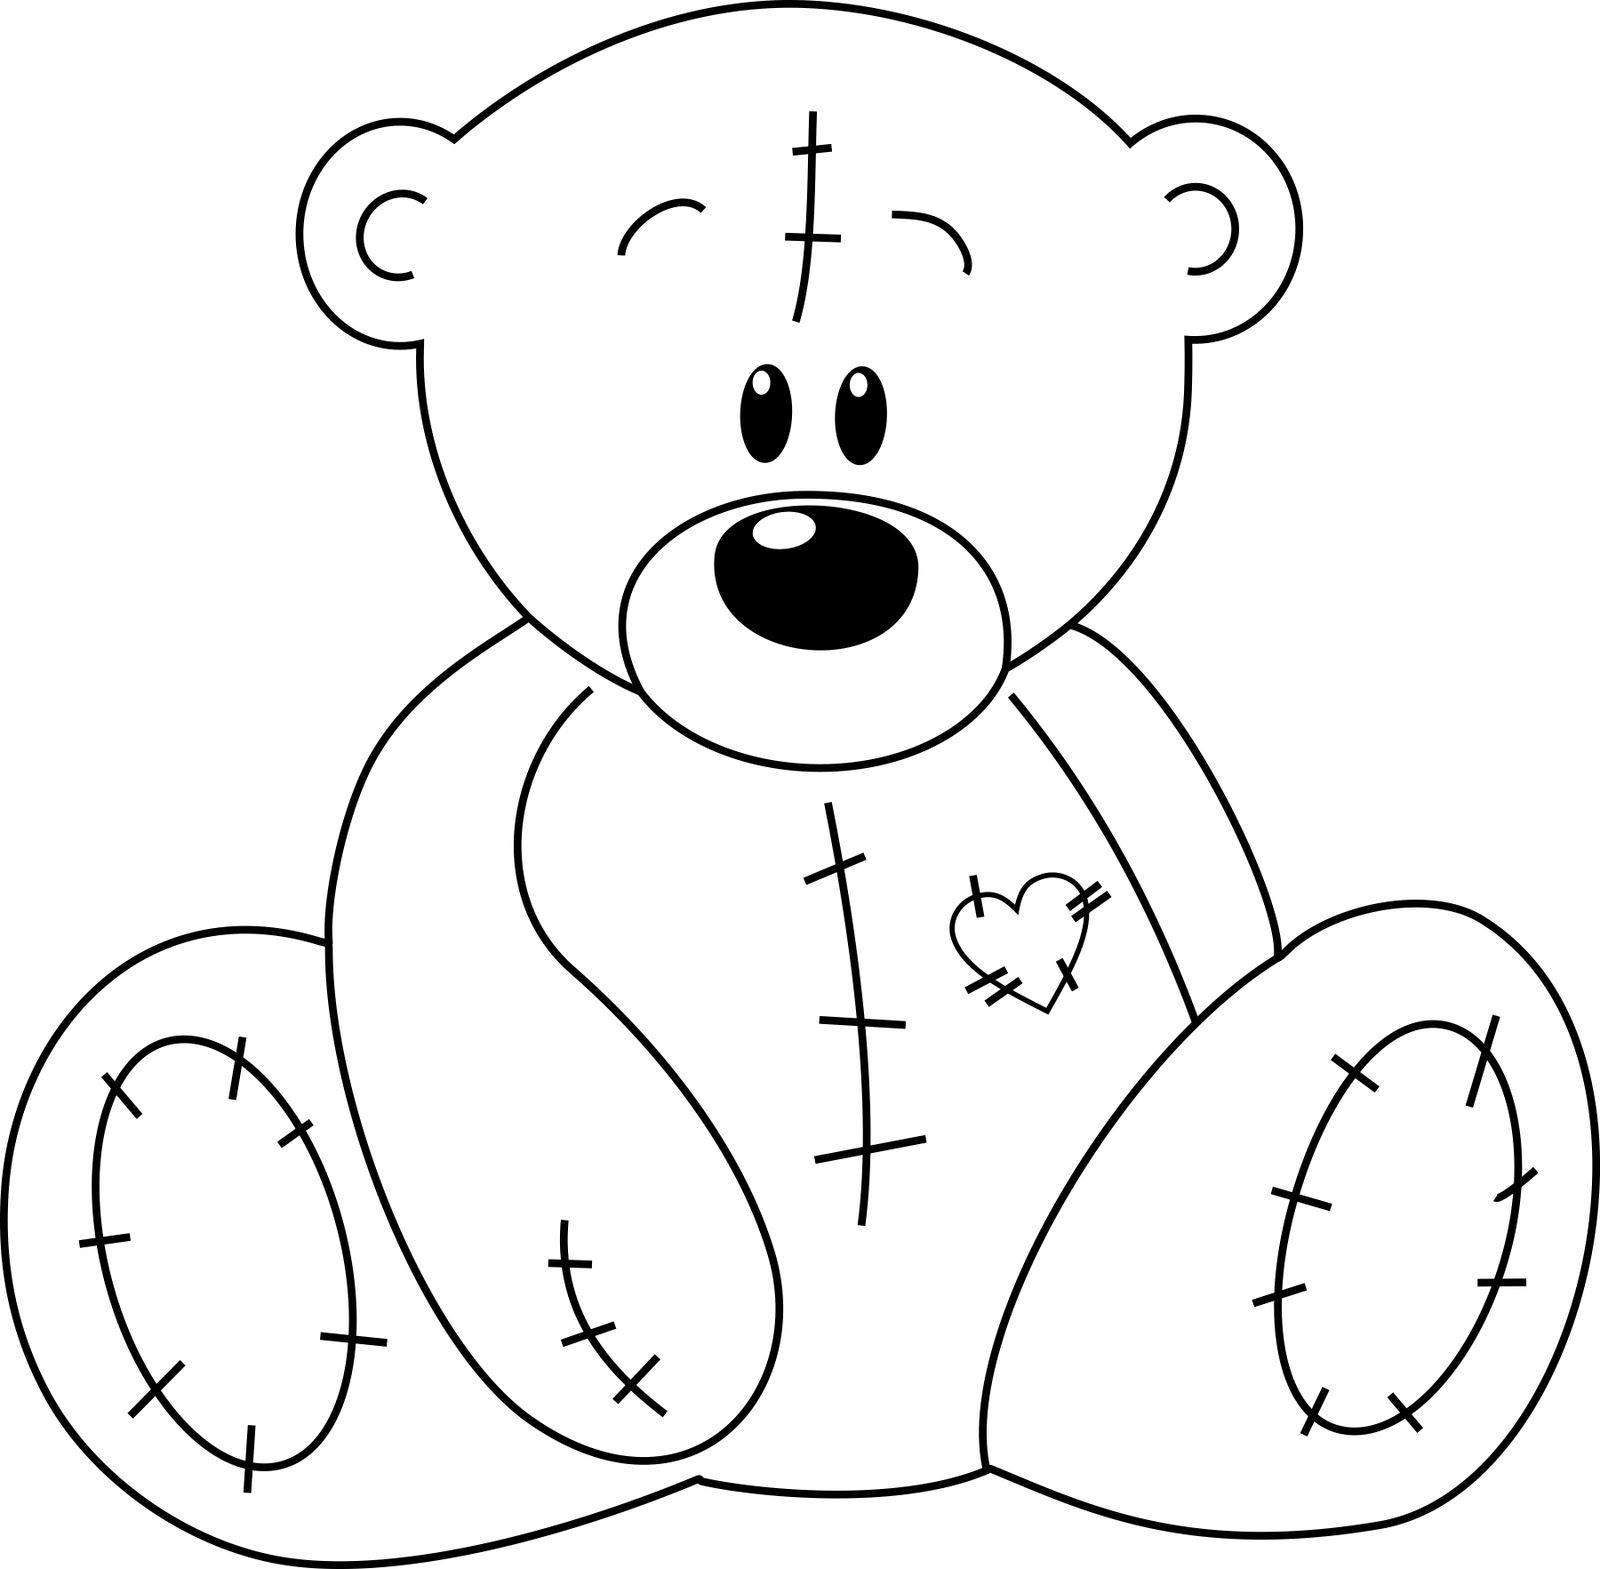 Blanket clipart outline. Bear with heart perfect